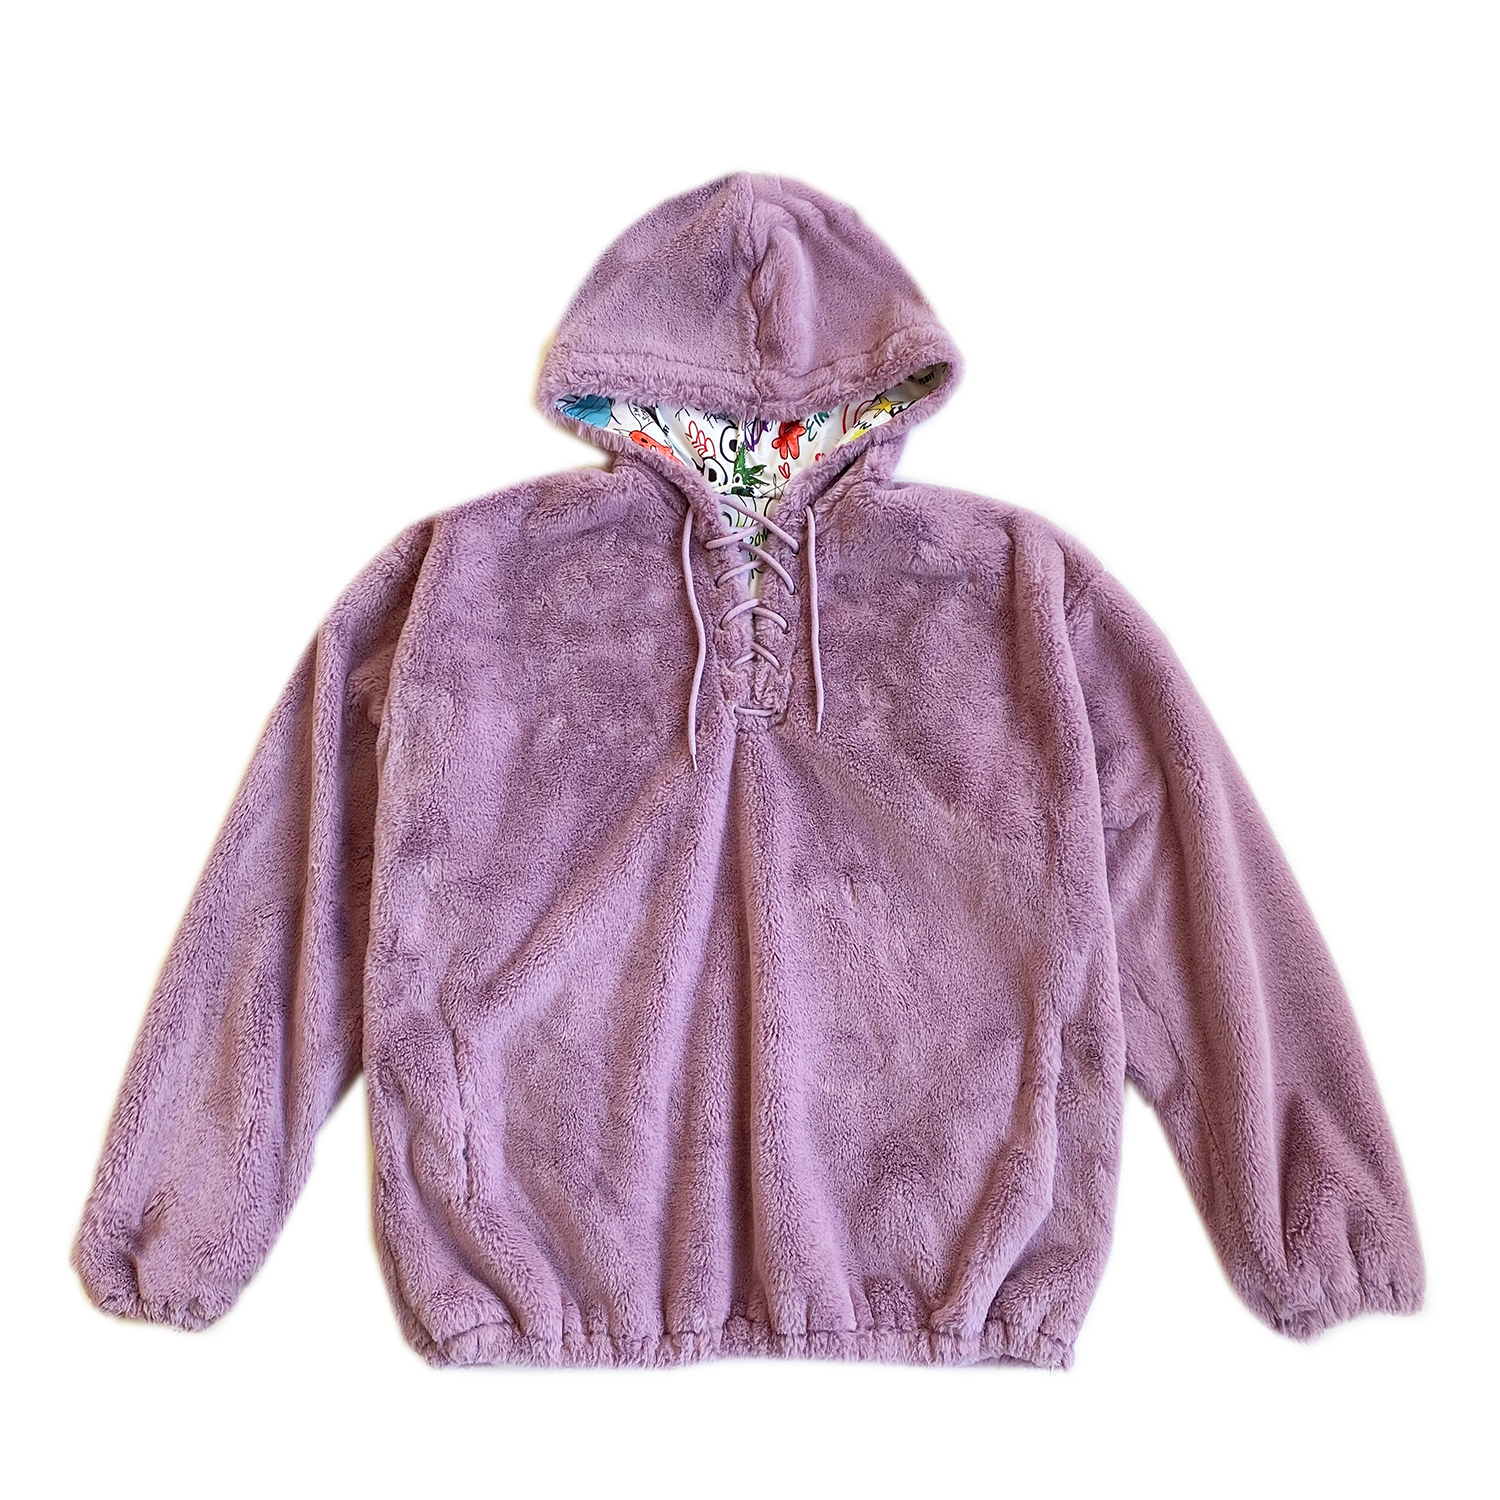 100% Recycled Teddy Lace-up Hoodie - Lavender